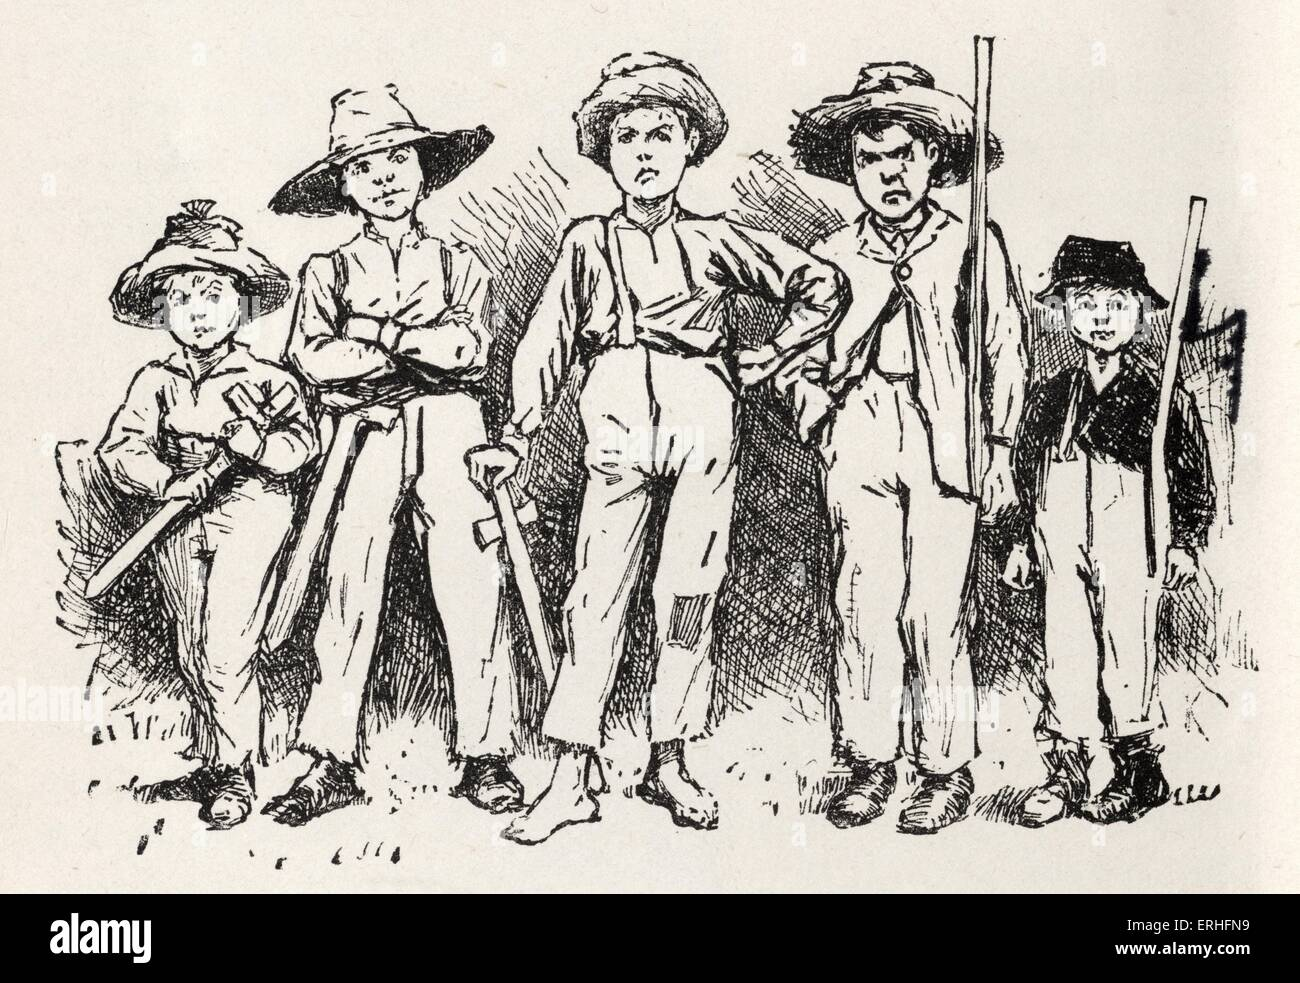 an analysis of the character of huckleberry finn in mark twains novel parker hollander ms carter american literature the character of  the novel the adventures of huckleberry finn,  analysis of &ampquothuckleberry finn .